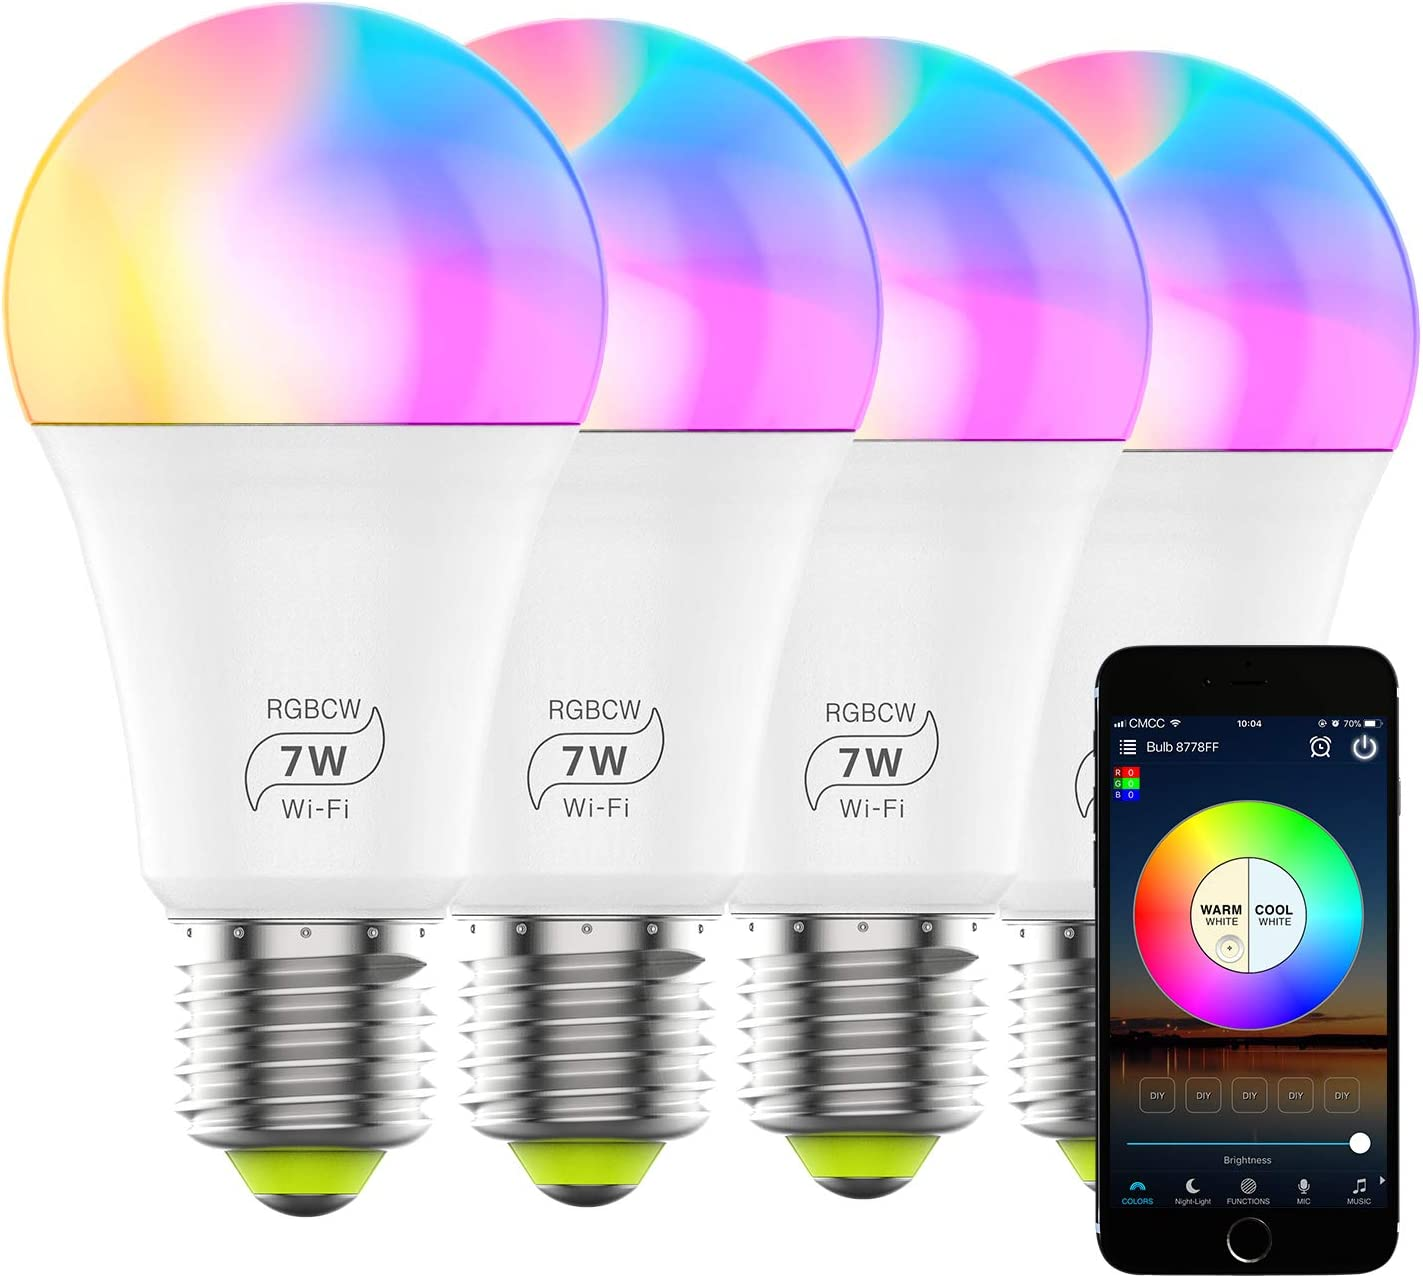 Smart Light Bulb Dimmable RGBCW WiFi Color Changing Light Bulb A19 E26 2700K-6500K 60 Watt Equivalent Sync to Music Works with Alexa, Echo, Google Home and IFTTT for Home Decor, Party(4 Pack)